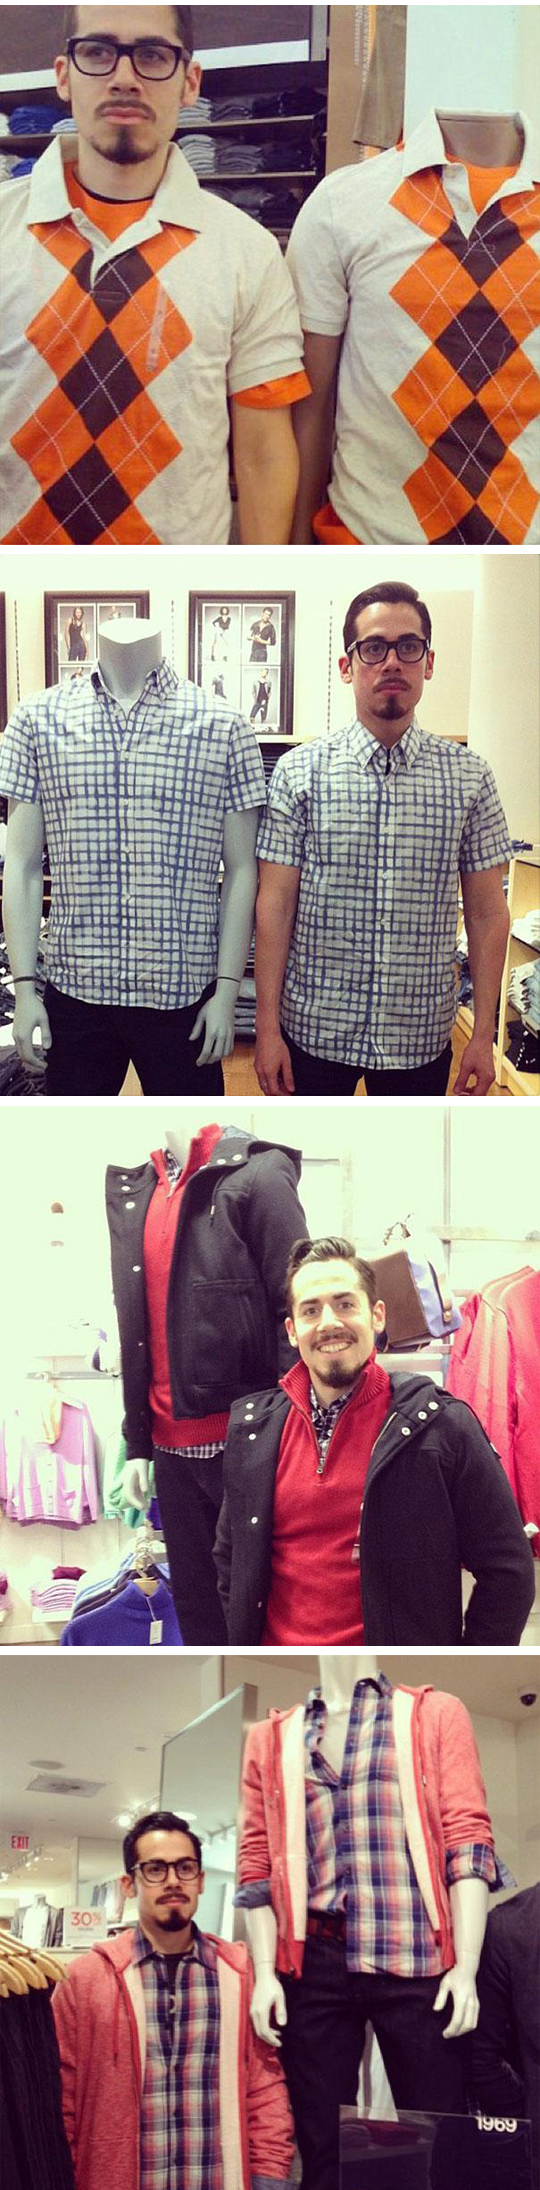 funny-boys-disguised-mannequin-clothes-shopping